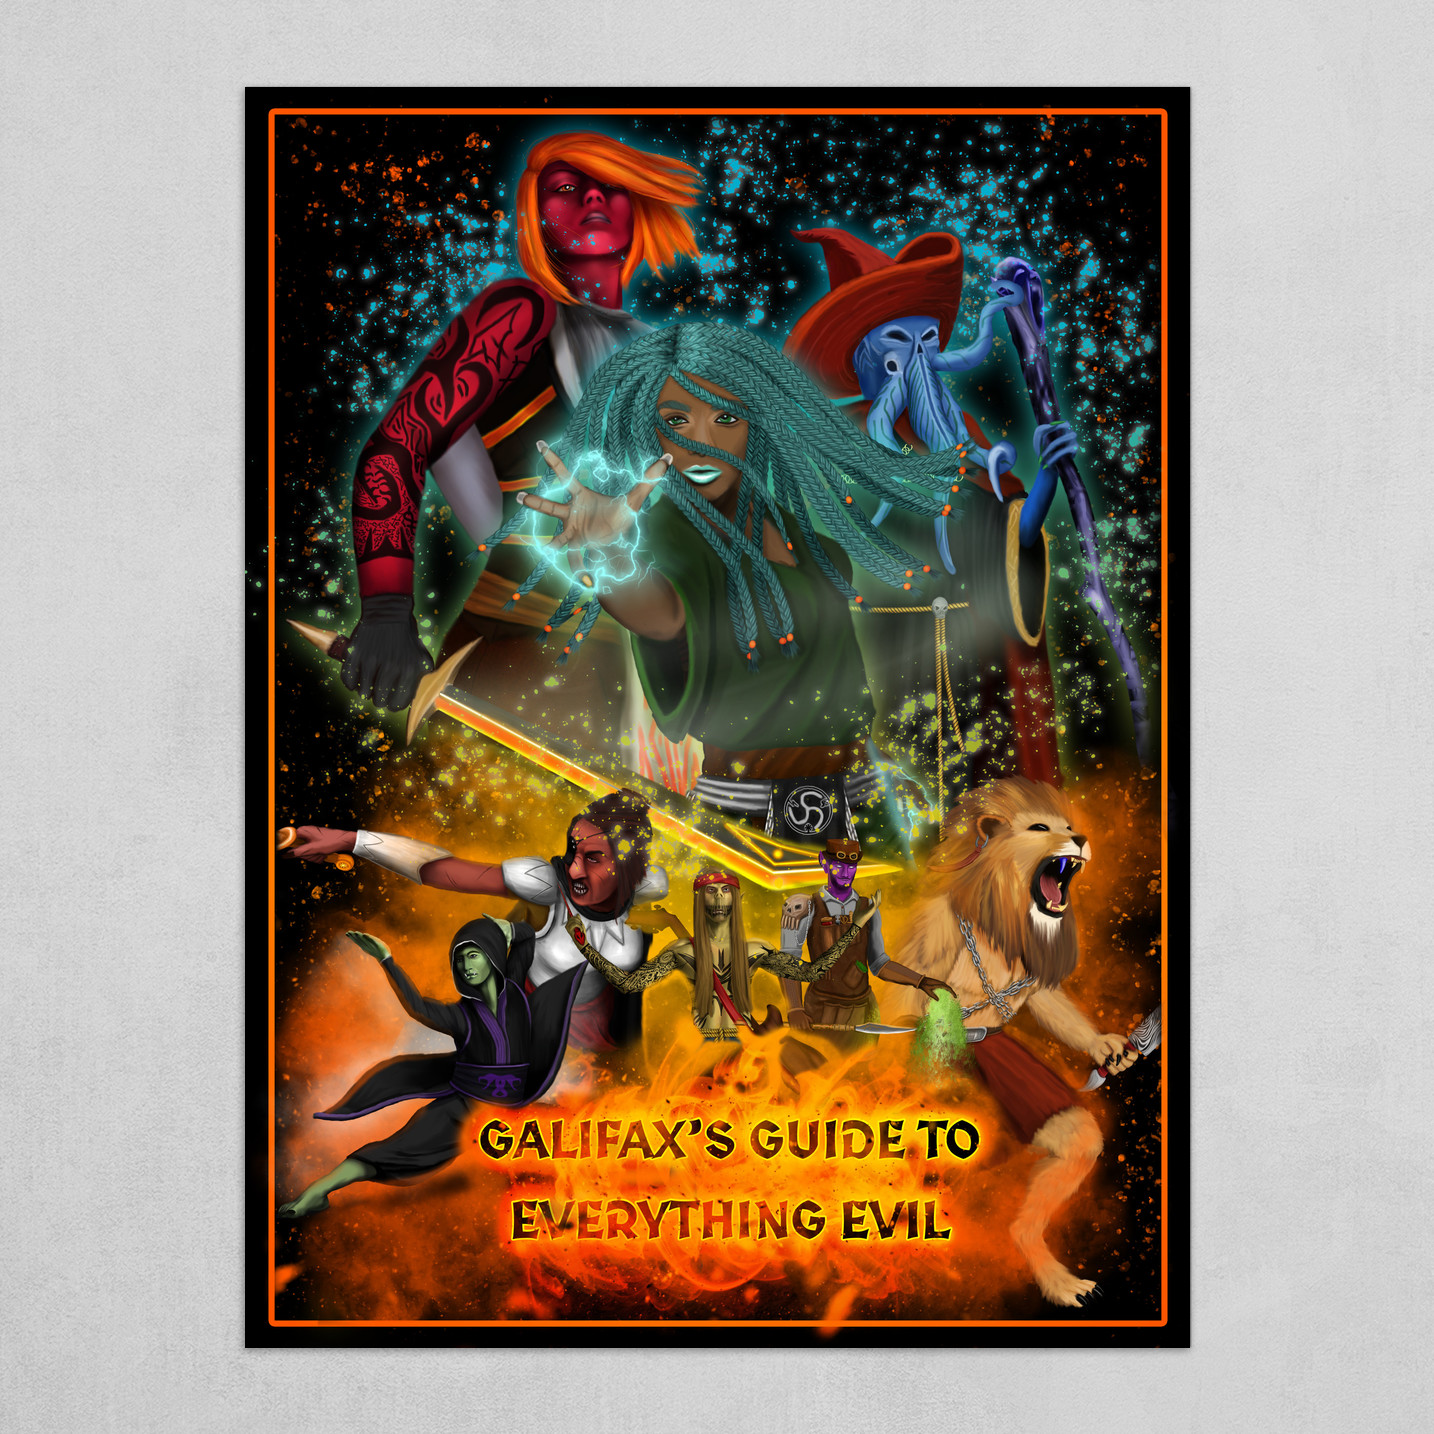 Galifax's Guide To Everything Evil Poster